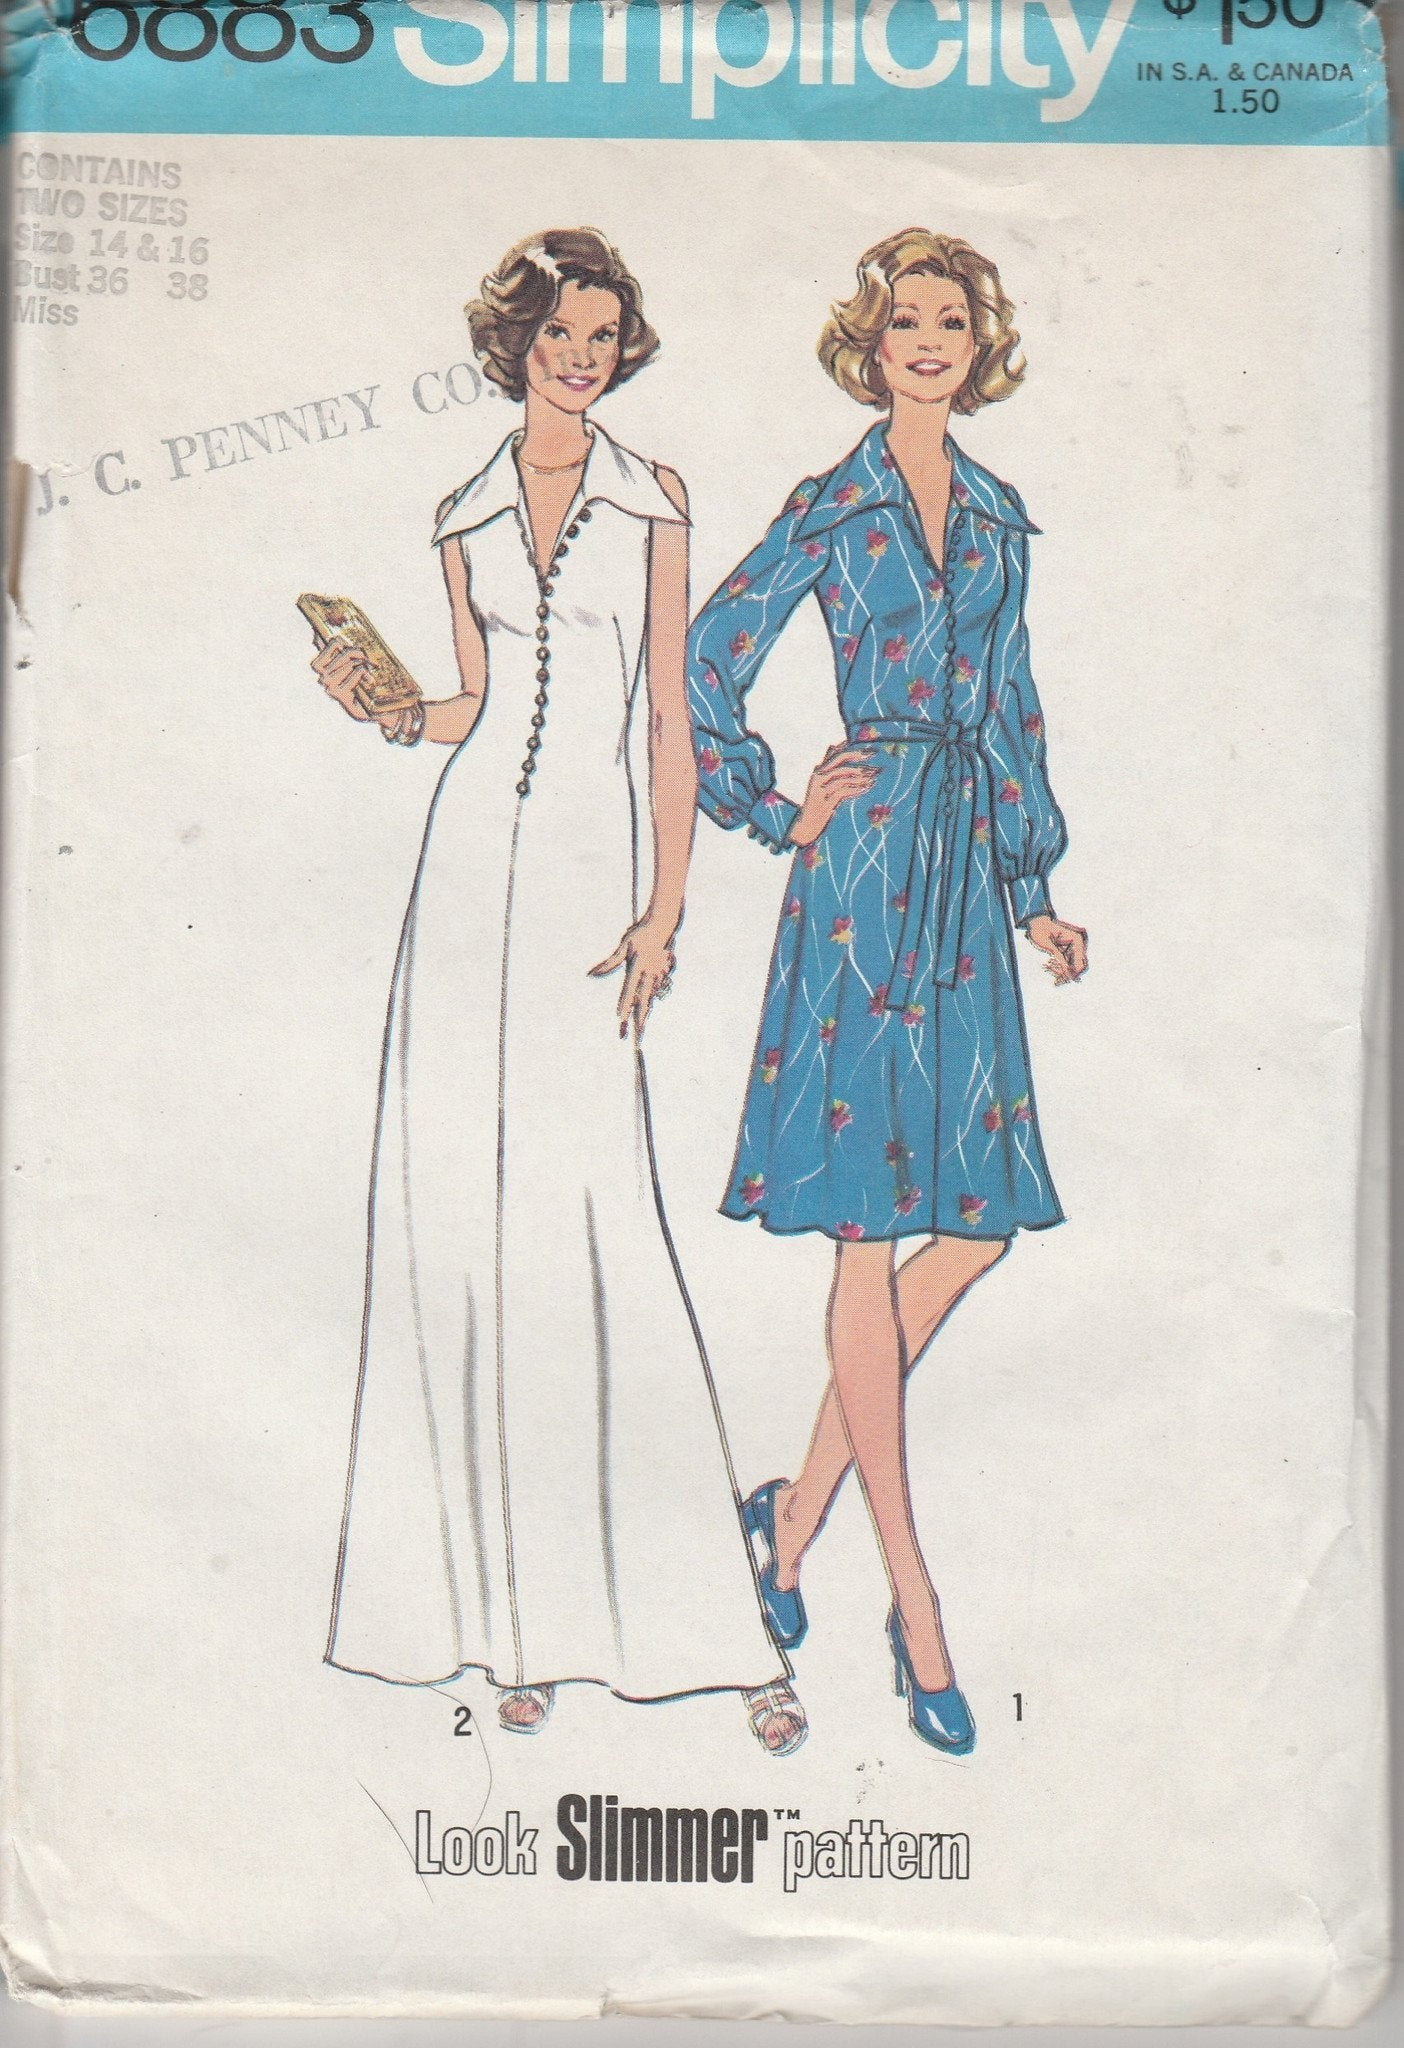 Simplicity 6883 Vintage 1970's Sewing Pattern Ladies Maxi Dress - VintageStitching - Vintage Sewing Patterns